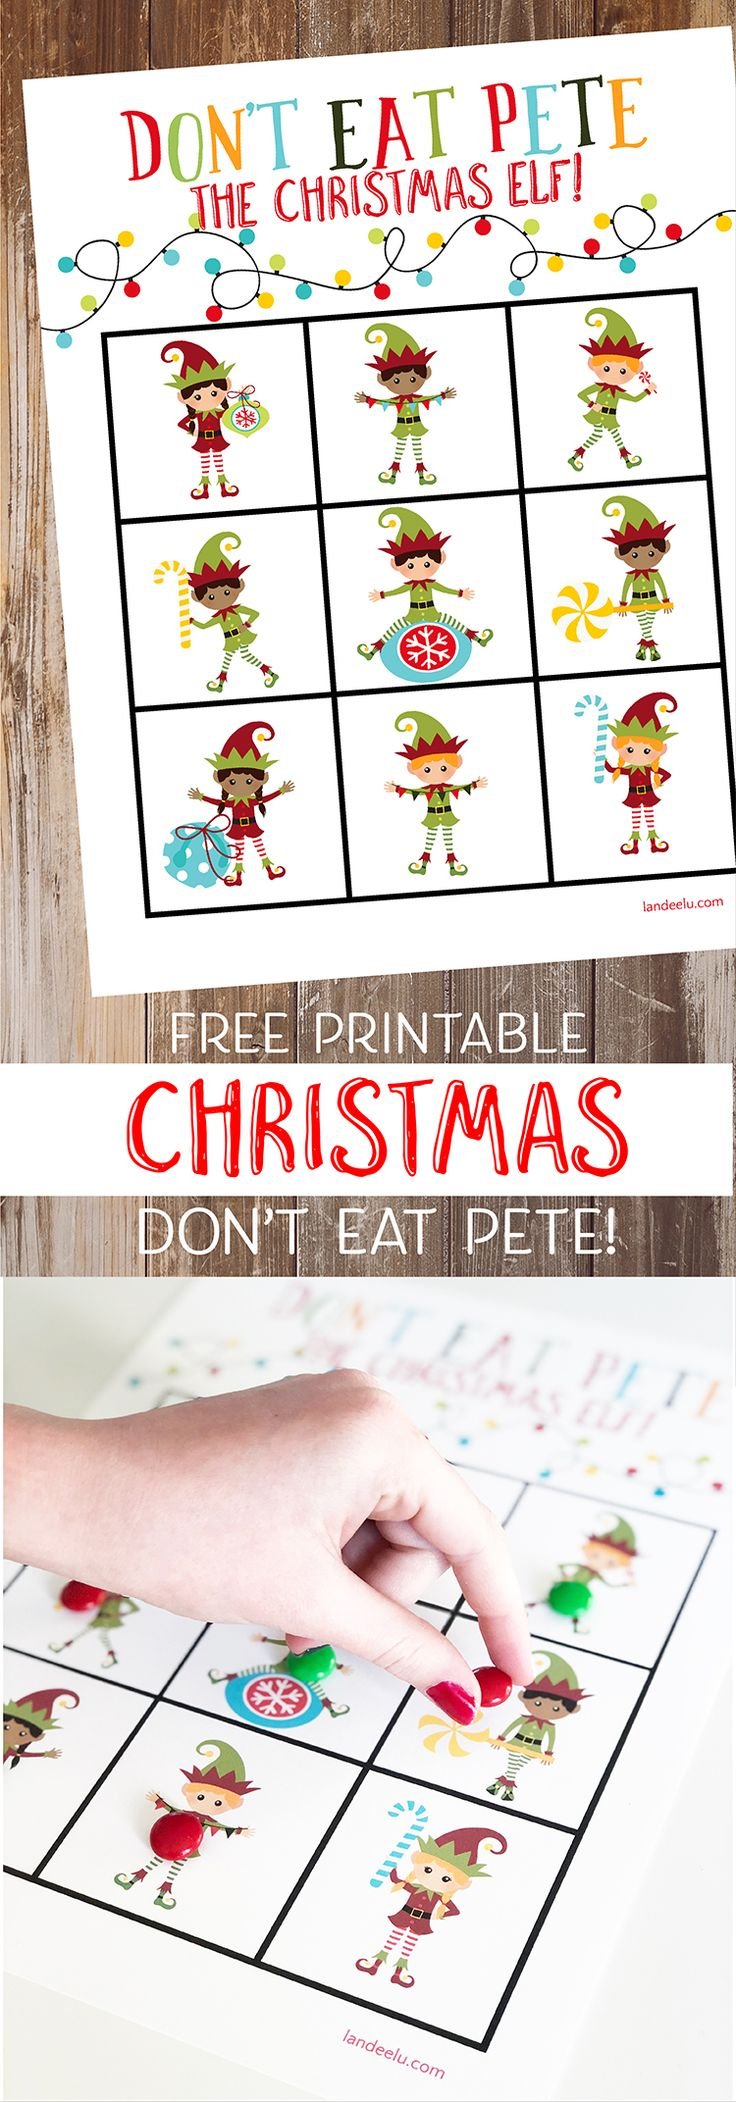 Looking for fun family Christmas games?  Download and print out this darling Ch...